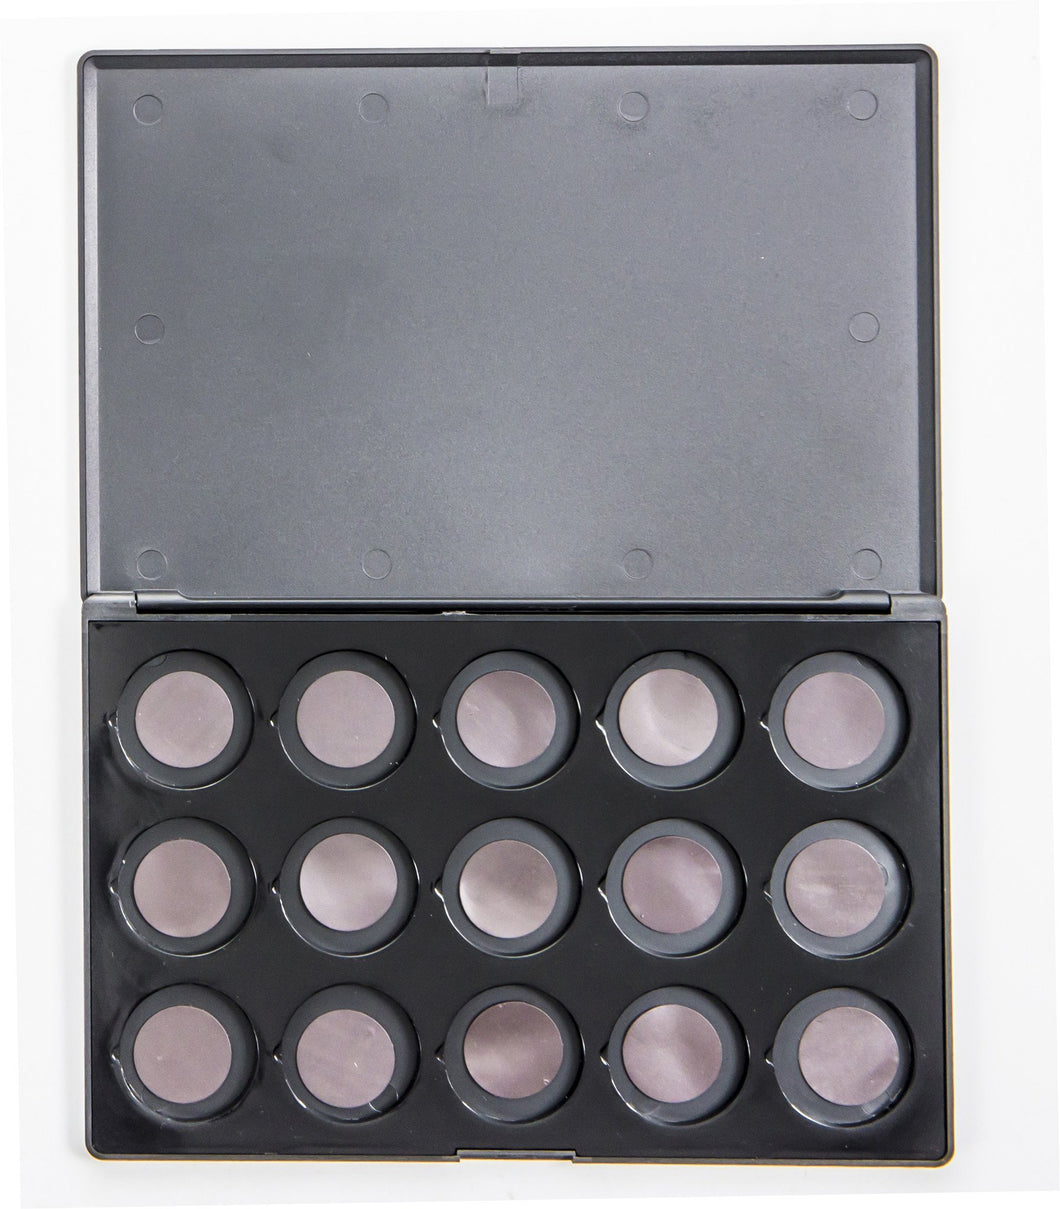 15-Hole PVC Empty Magnetic Palette